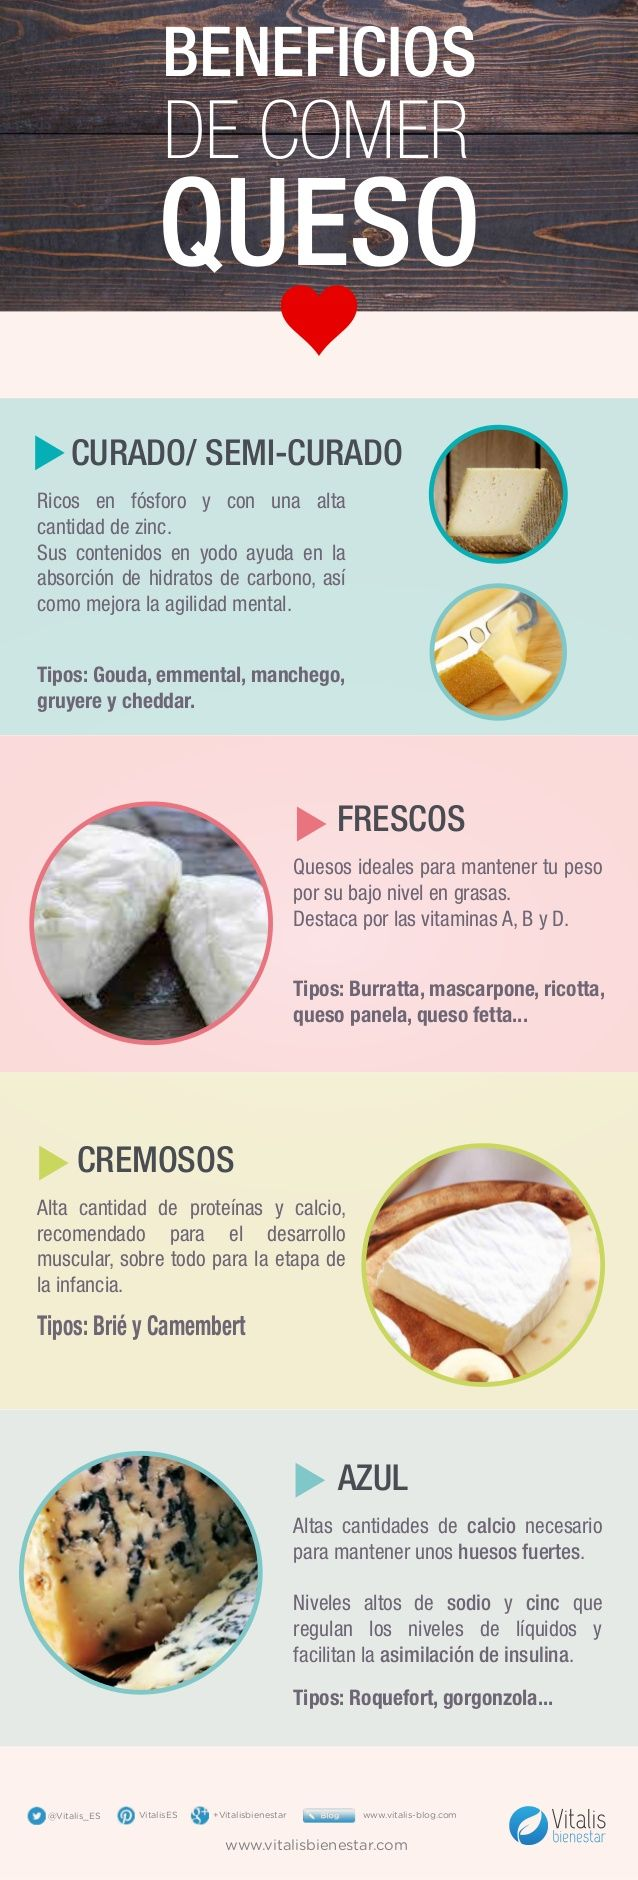 Beneficios de comer queso http://1502983.talkfusion.com/es/